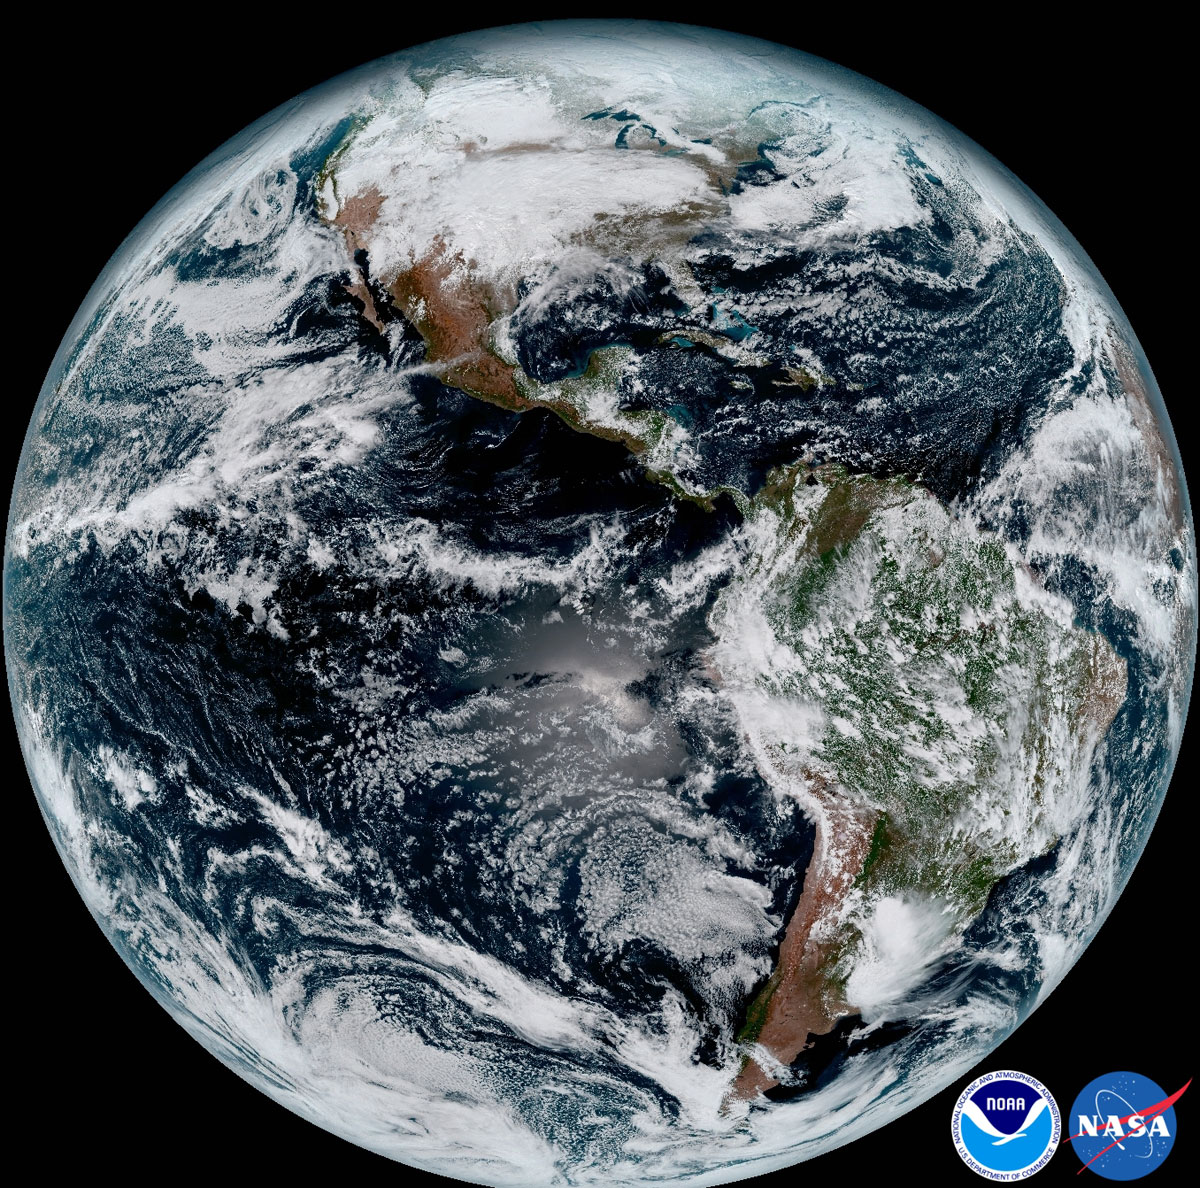 nasa blue marble 2017 1 Picture of the Day: Blue Marble, 2017